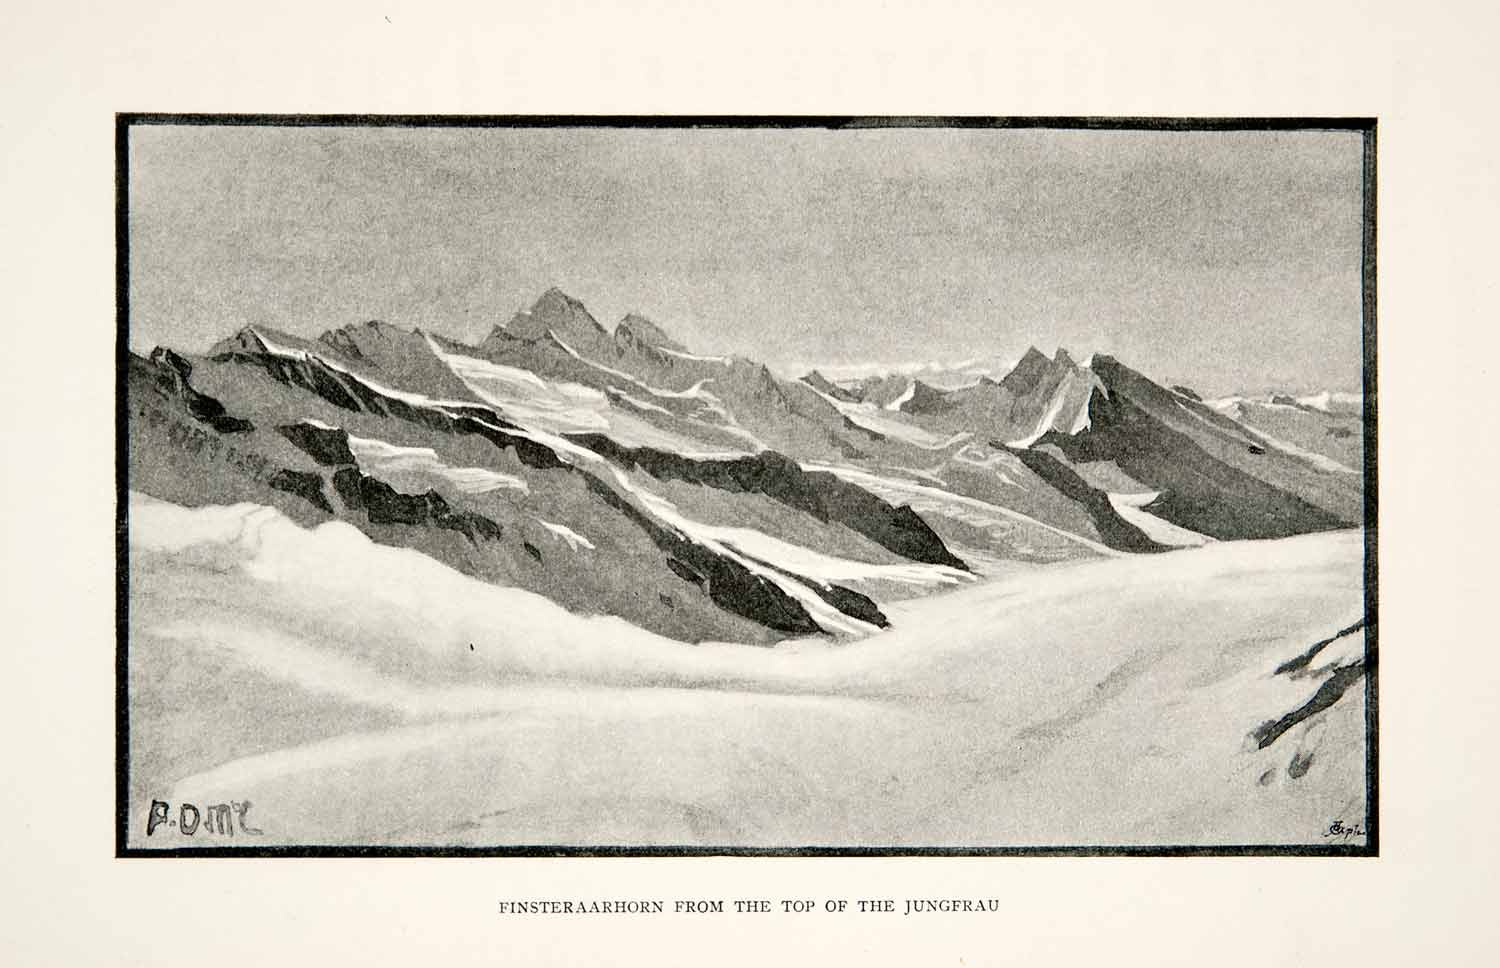 1895 Print Bernese Alps Mountains Finsteraarhorn Jungfrau Peak Switzerland XGPB1